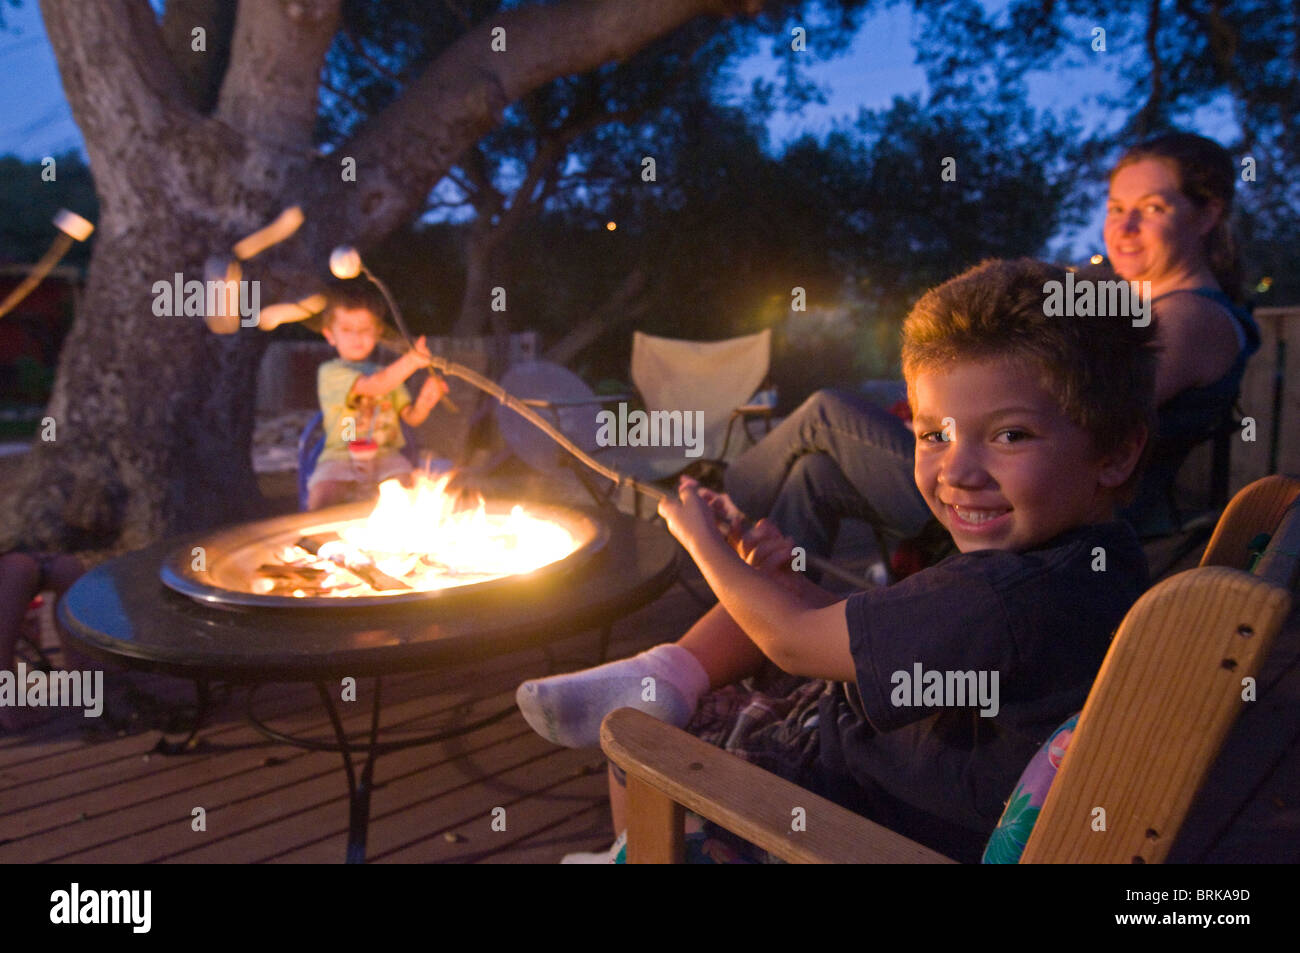 A Family Toasting Marshmallows Over Fire In Their Backyard